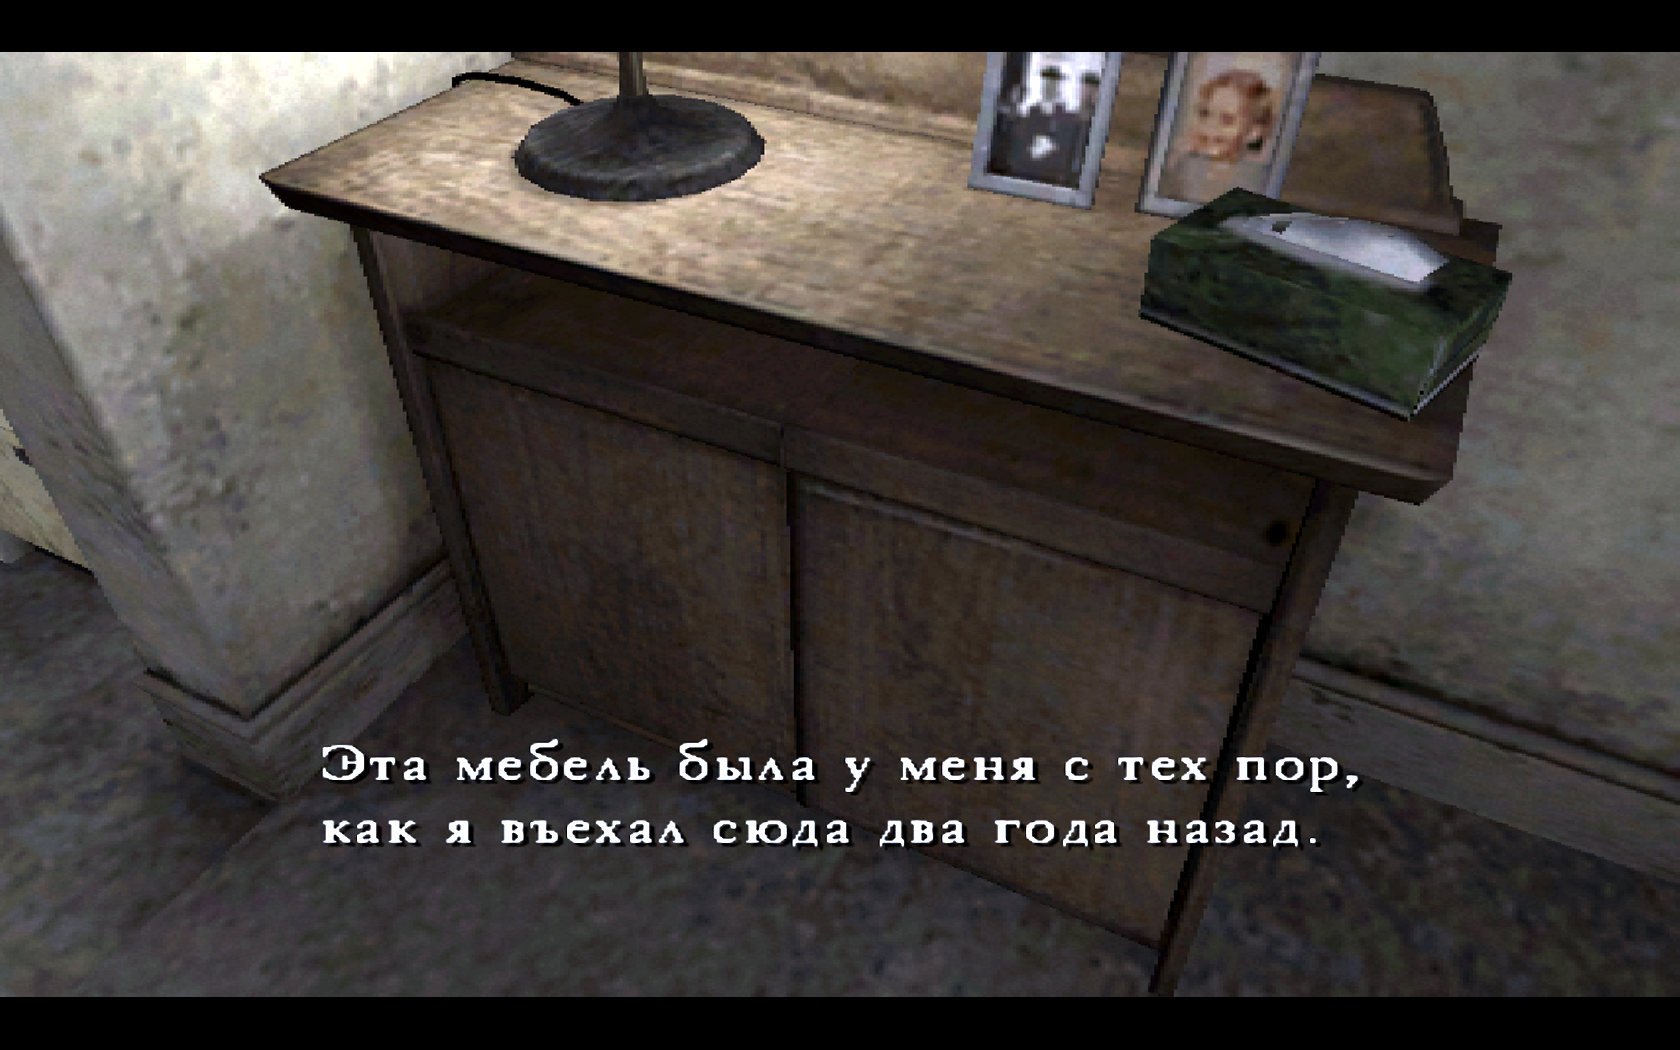 SILENT HILL 4_The Room 07.10.2020 17_08_35.png